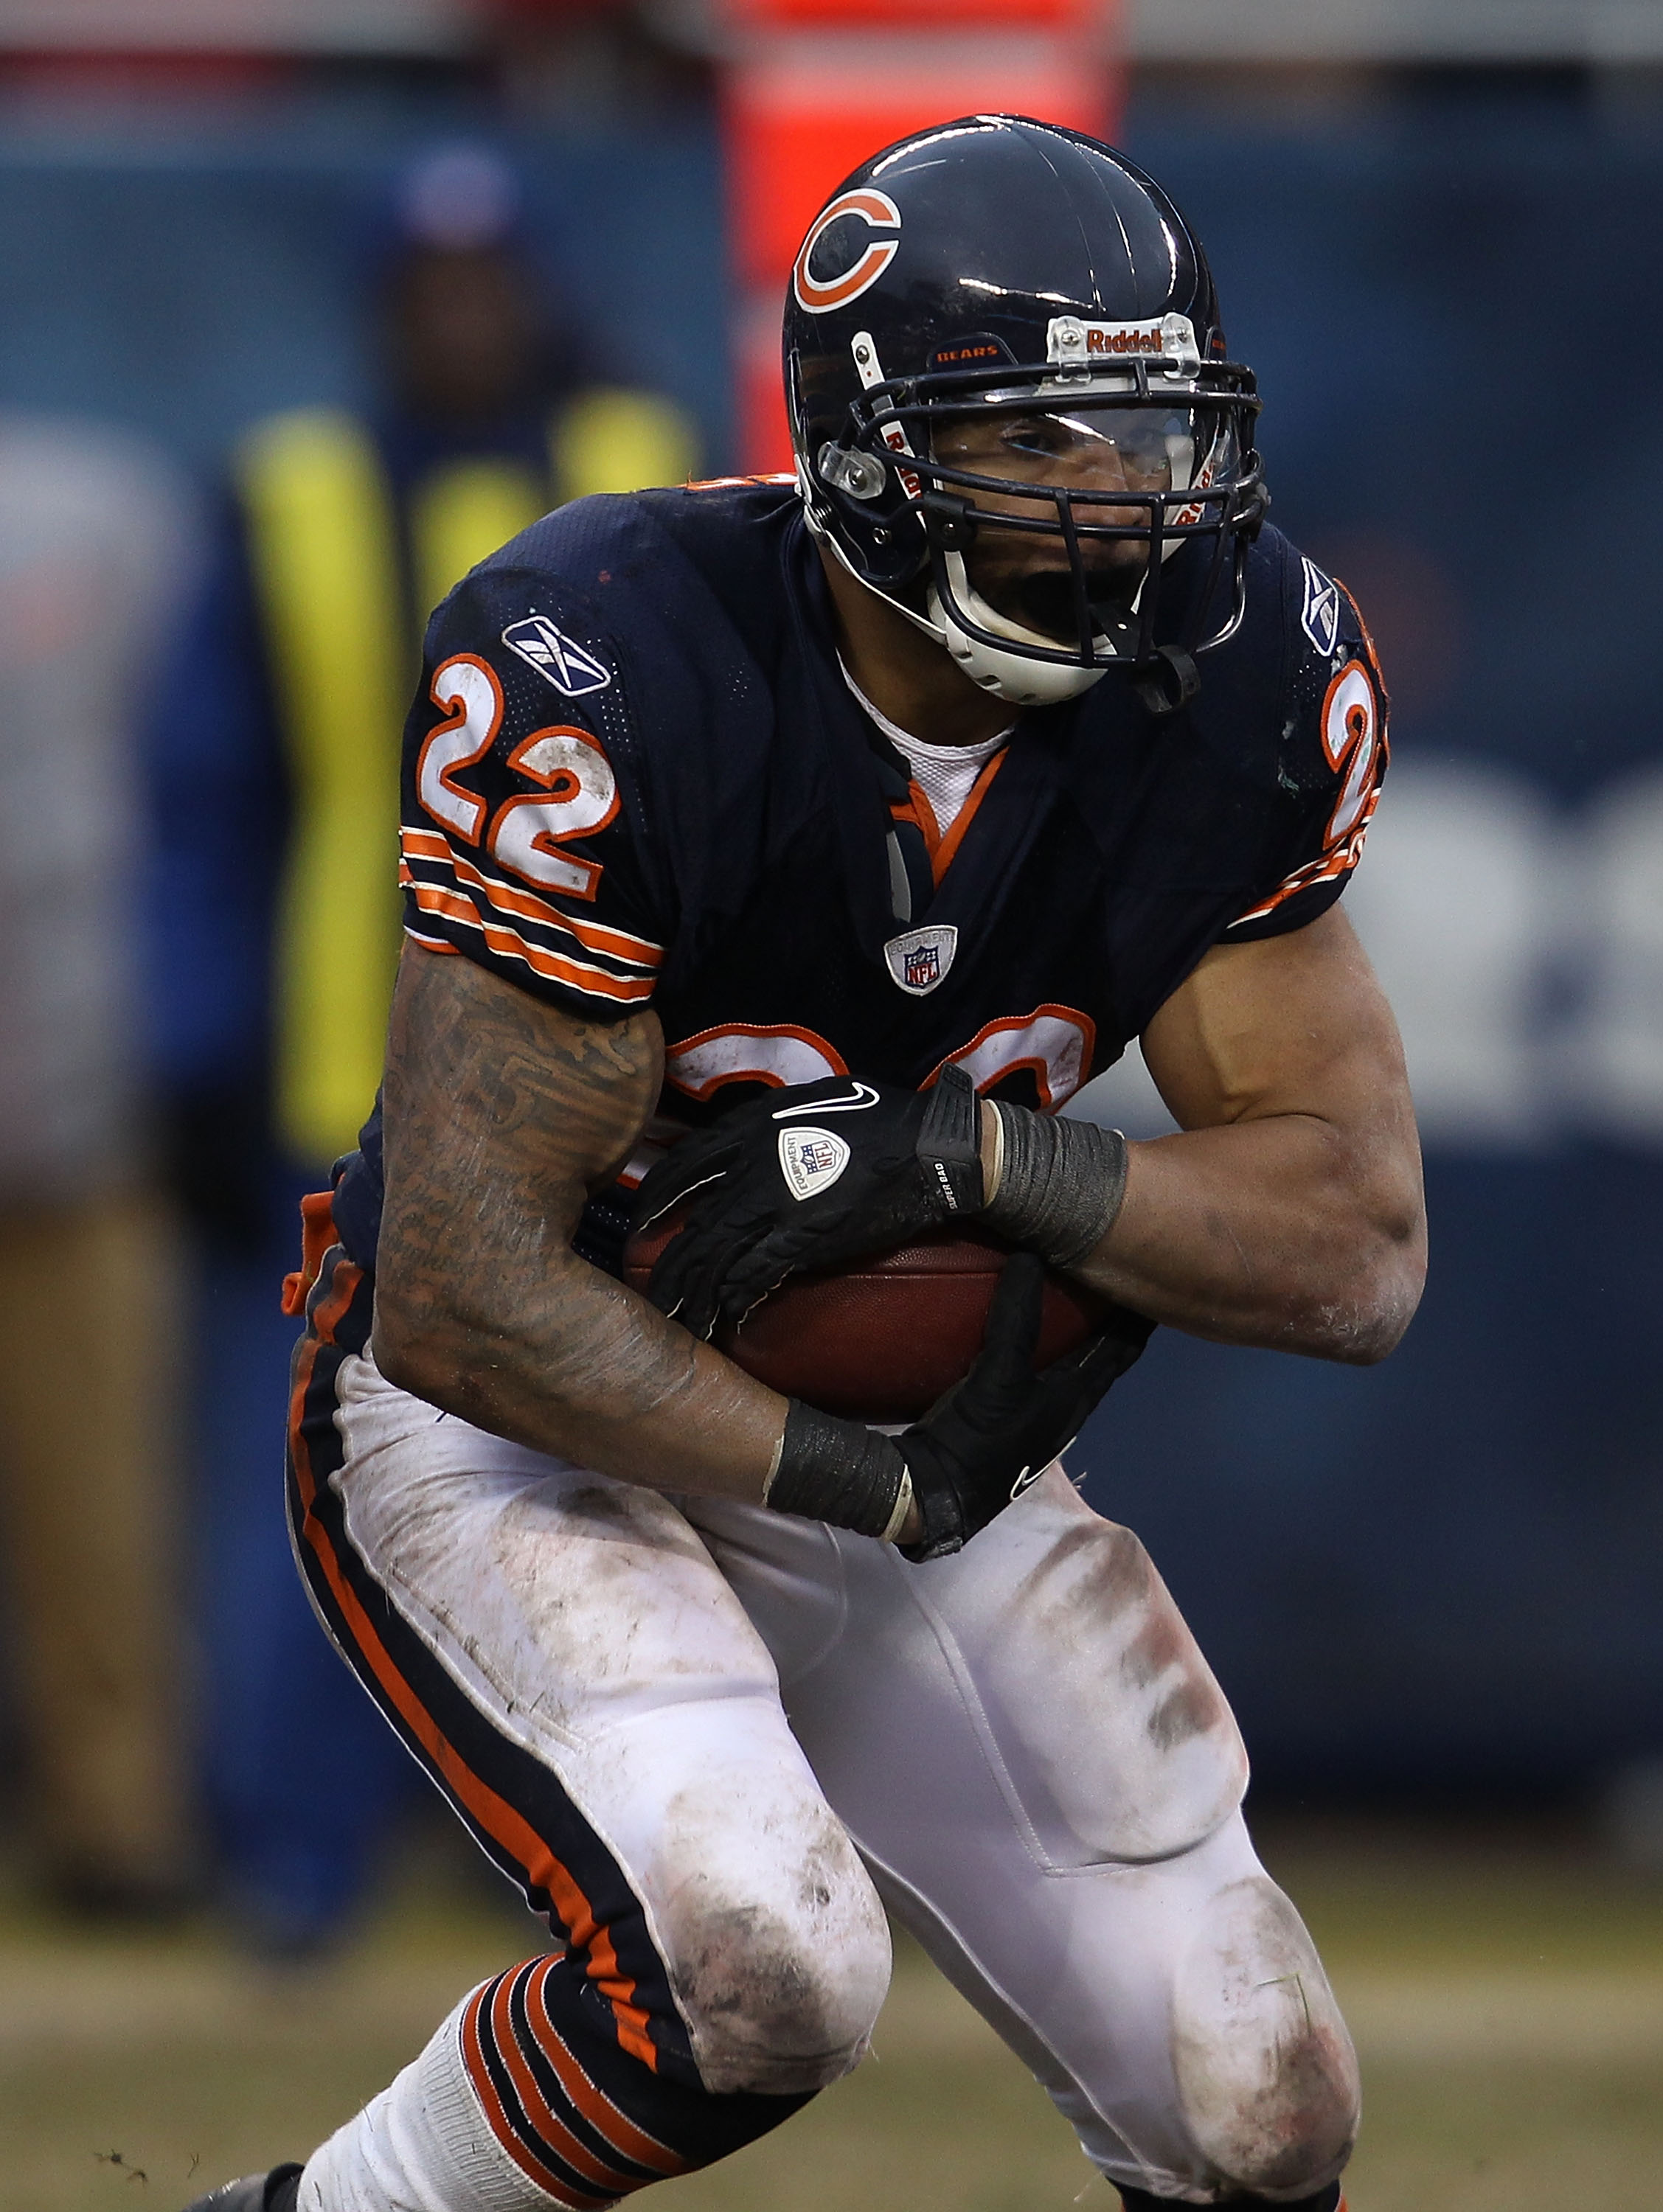 CHICAGO, IL - DECEMBER 26: Matt Forte #22 of the Chicago Bears runs against the New York Jets at Soldier Field on December 26, 2010 in Chicago, Illinois. The Bears defeated the Jets 38-34. (Photo by Jonathan Daniel/Getty Images)